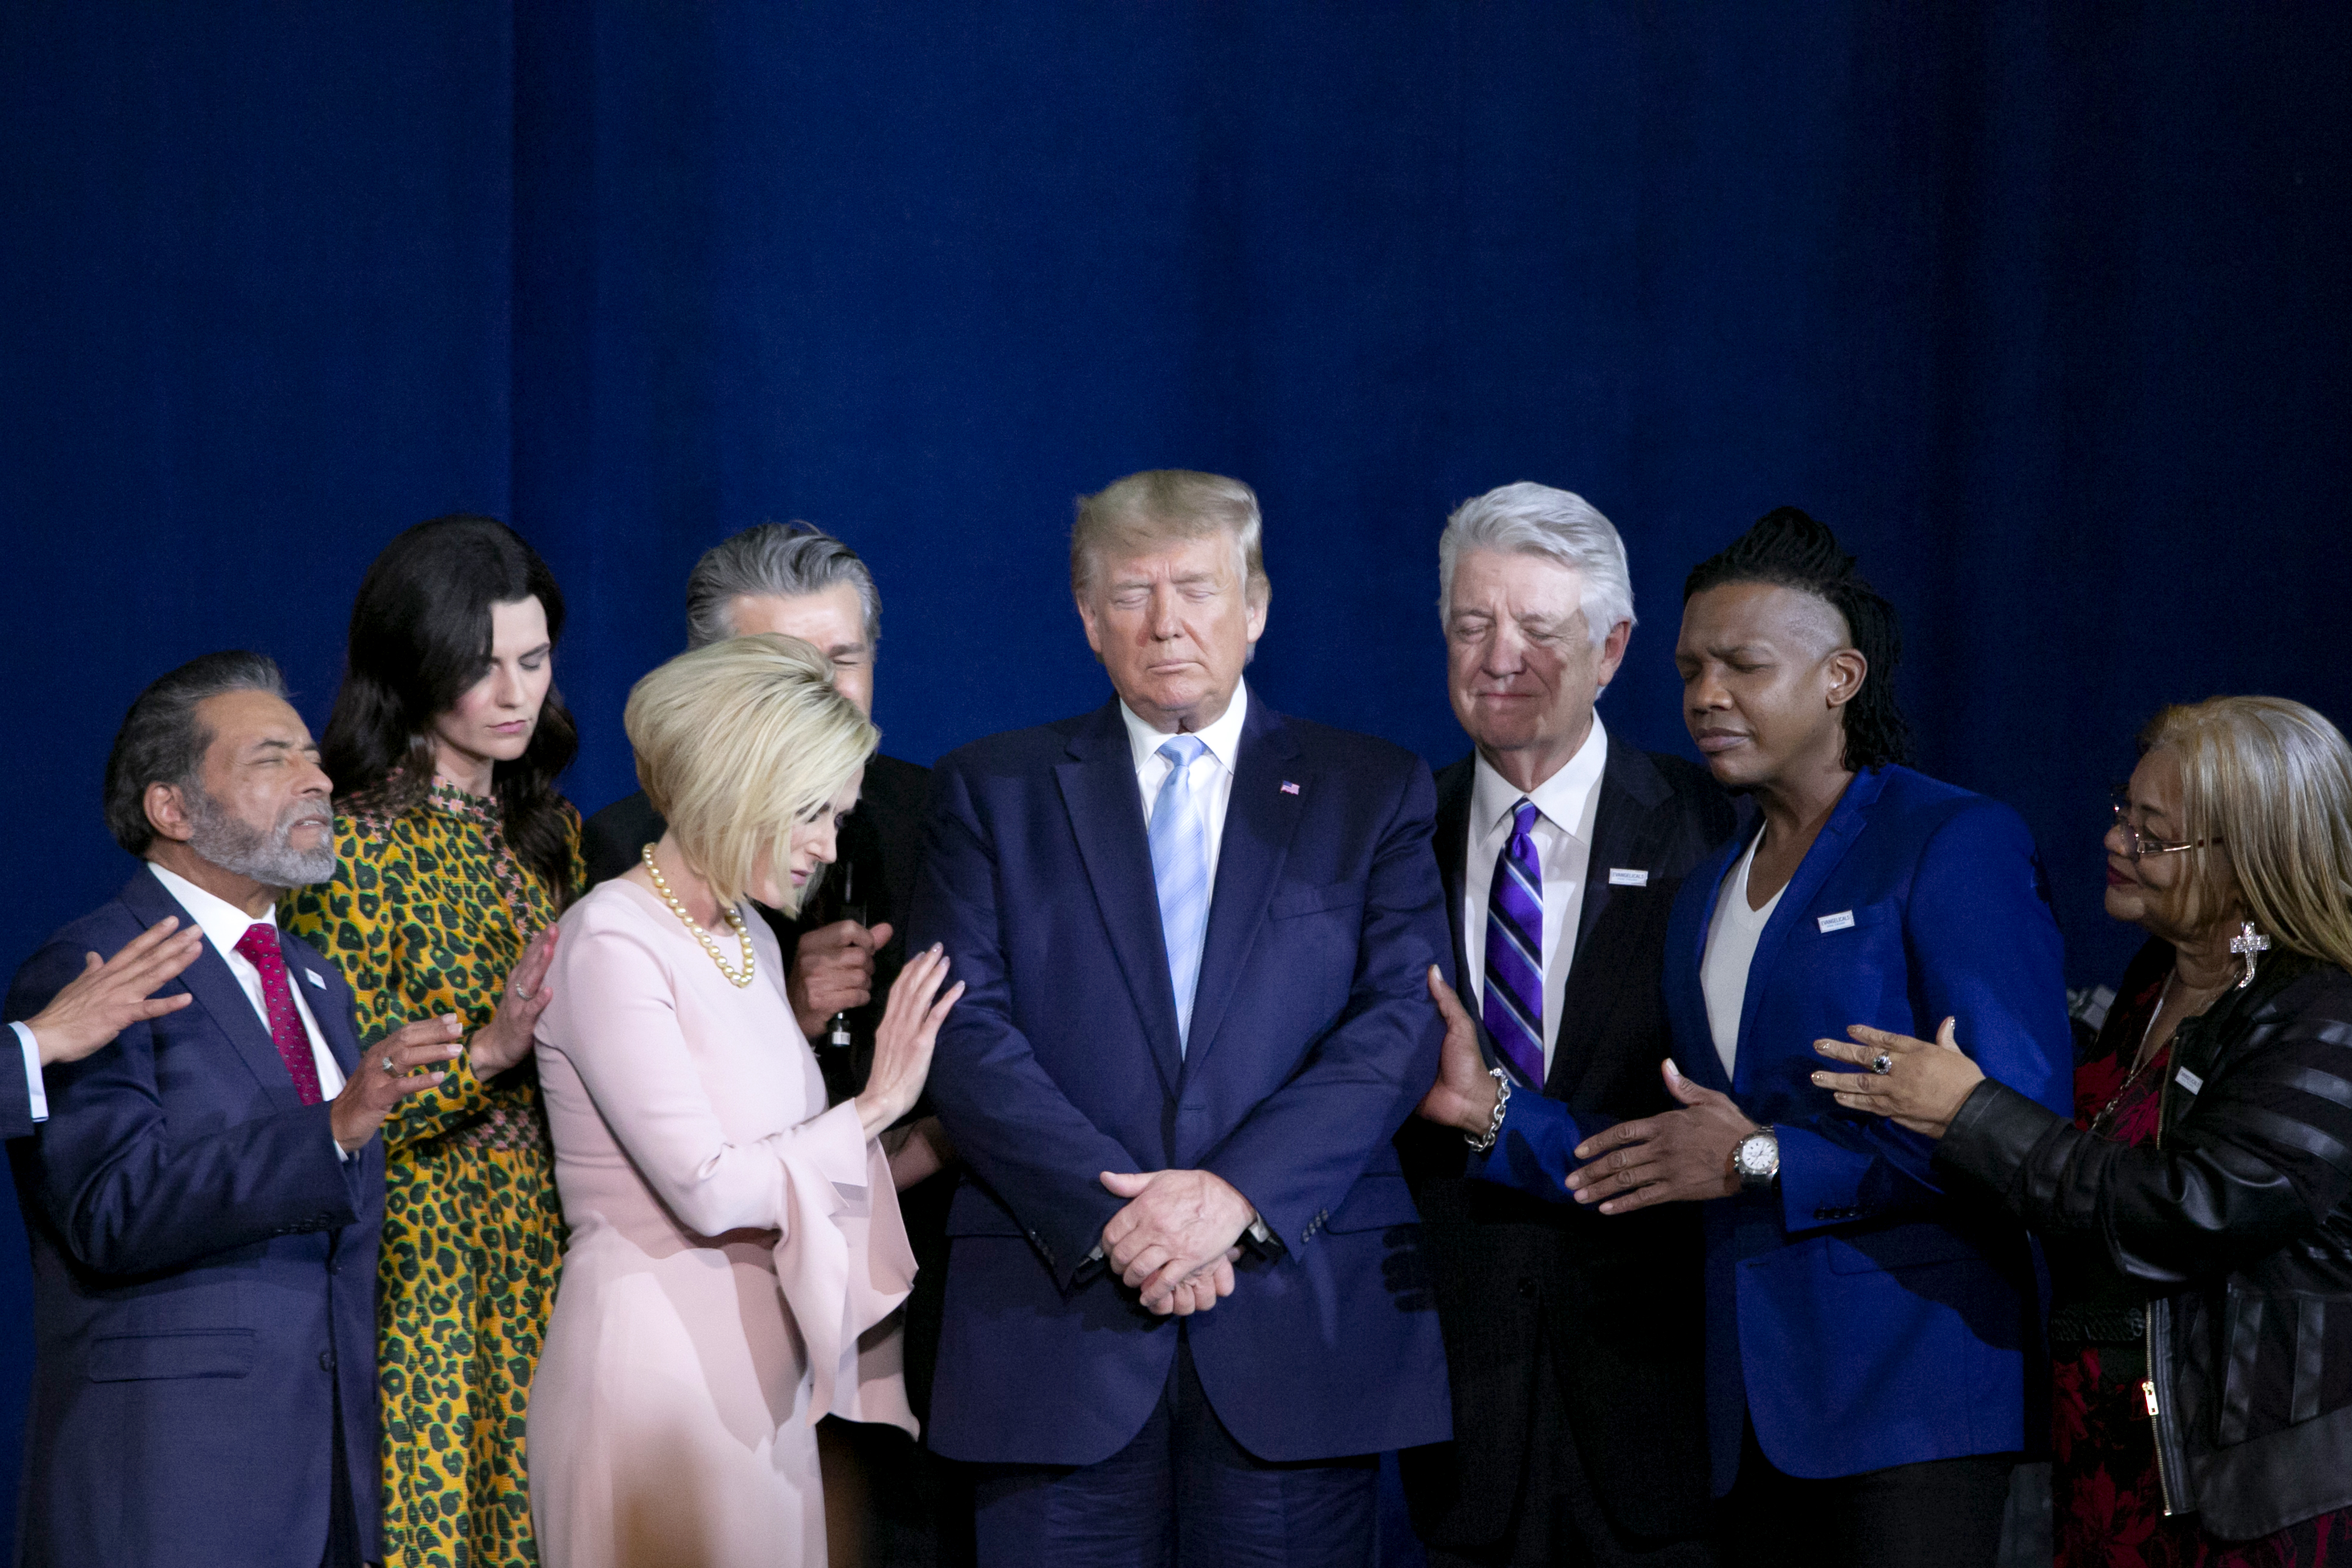 President Donald Trump, center, prays during an 'Evangelicals for Trump' Coalition launch event in Miami, Florida, on Jan. 3, 2020.